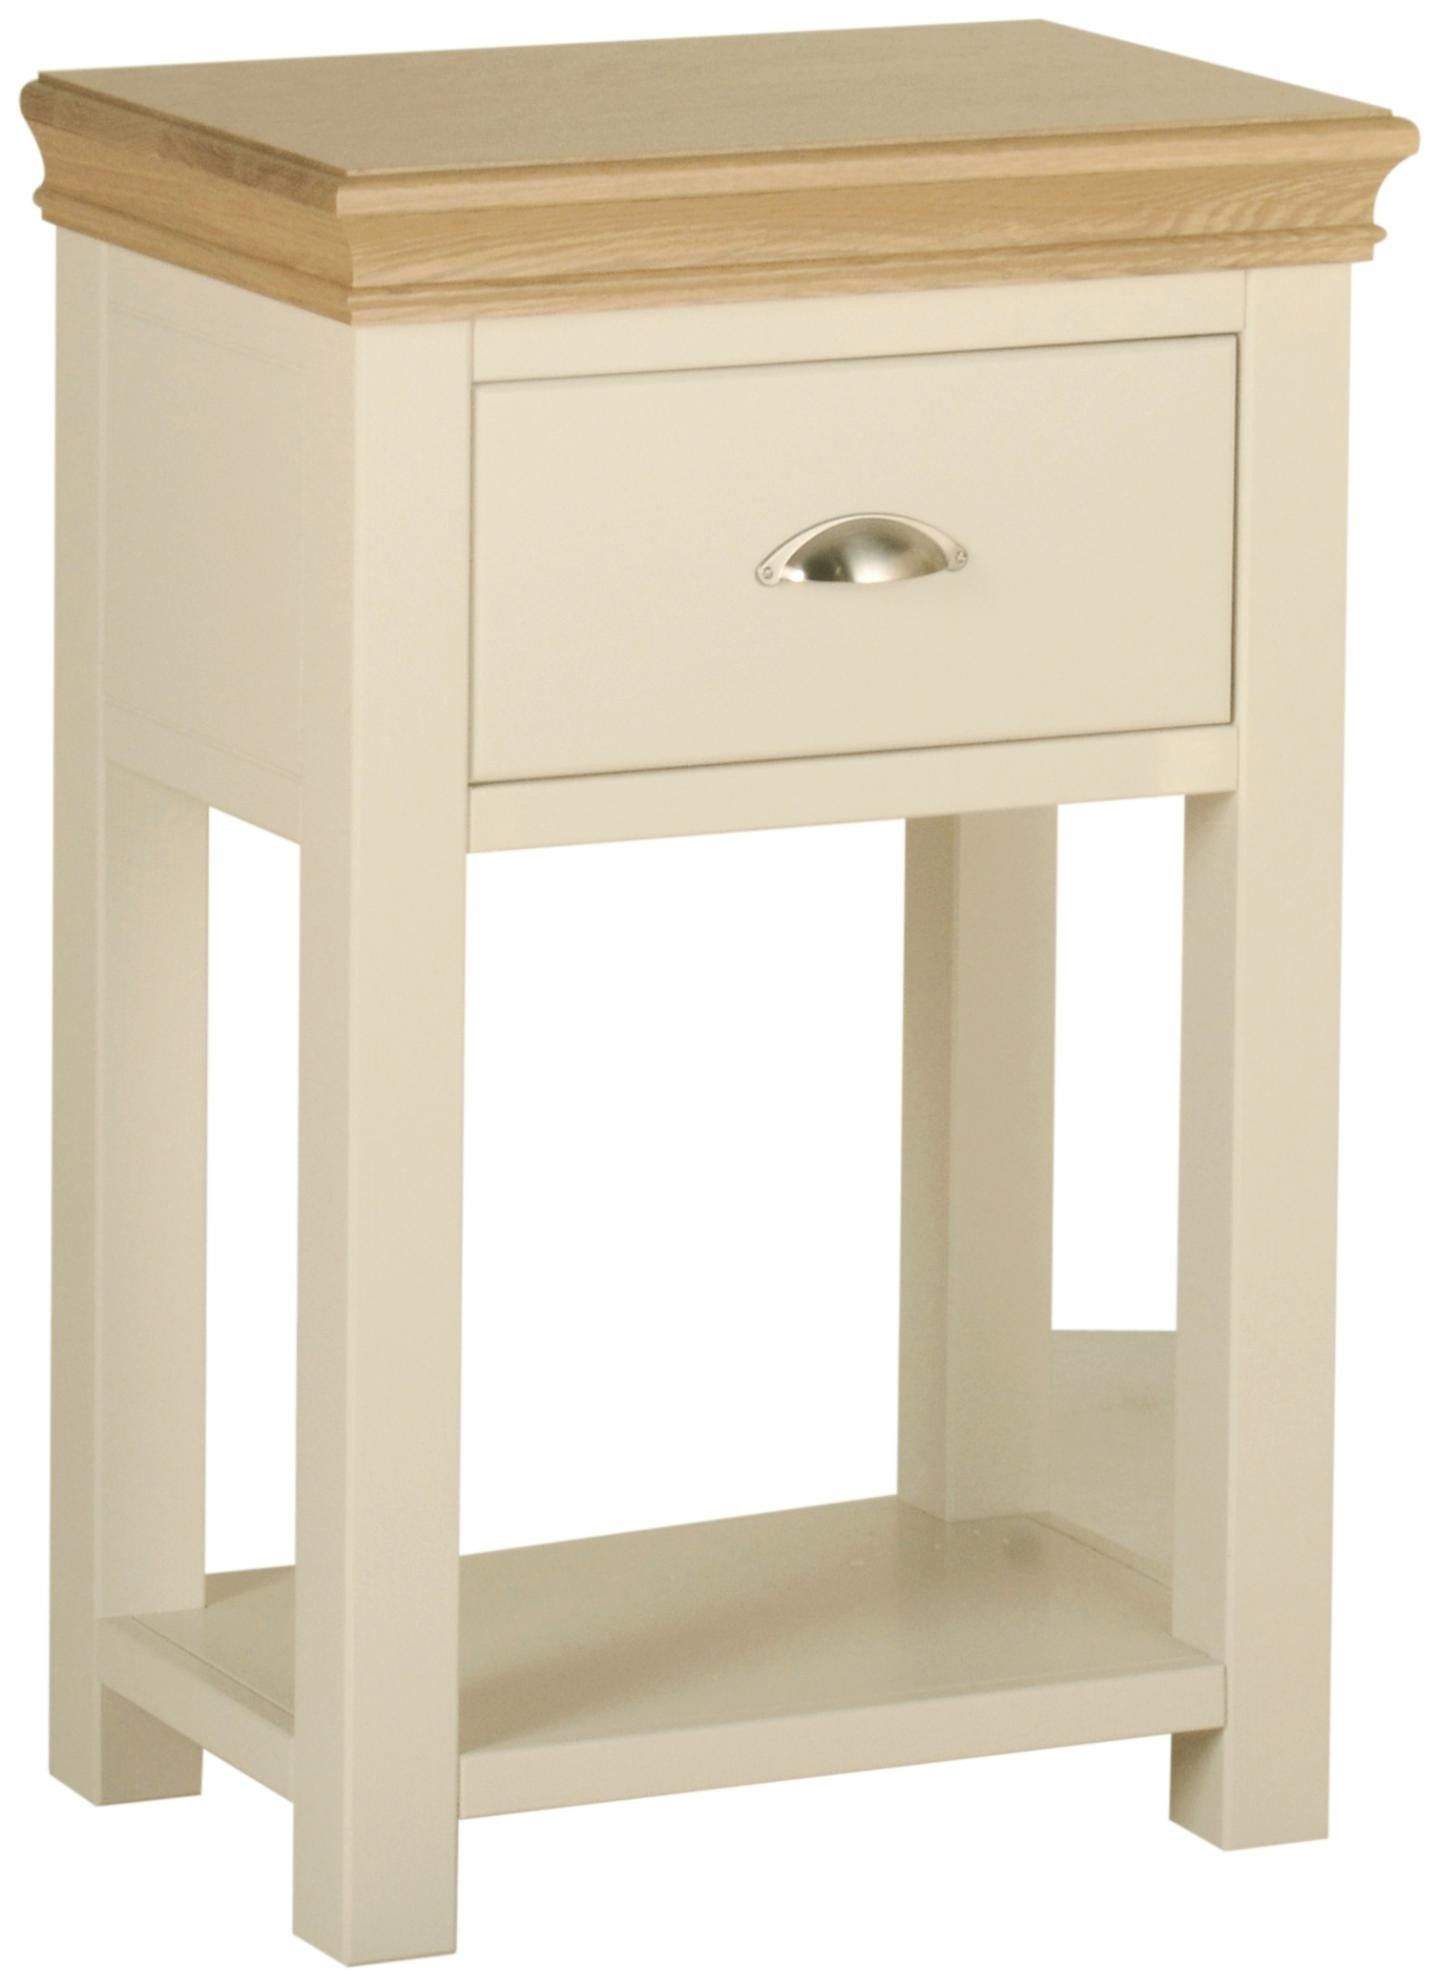 Emily 1 Drawer Console Table Painted Ivory with Oak Tops  Willobys console tables  Hall